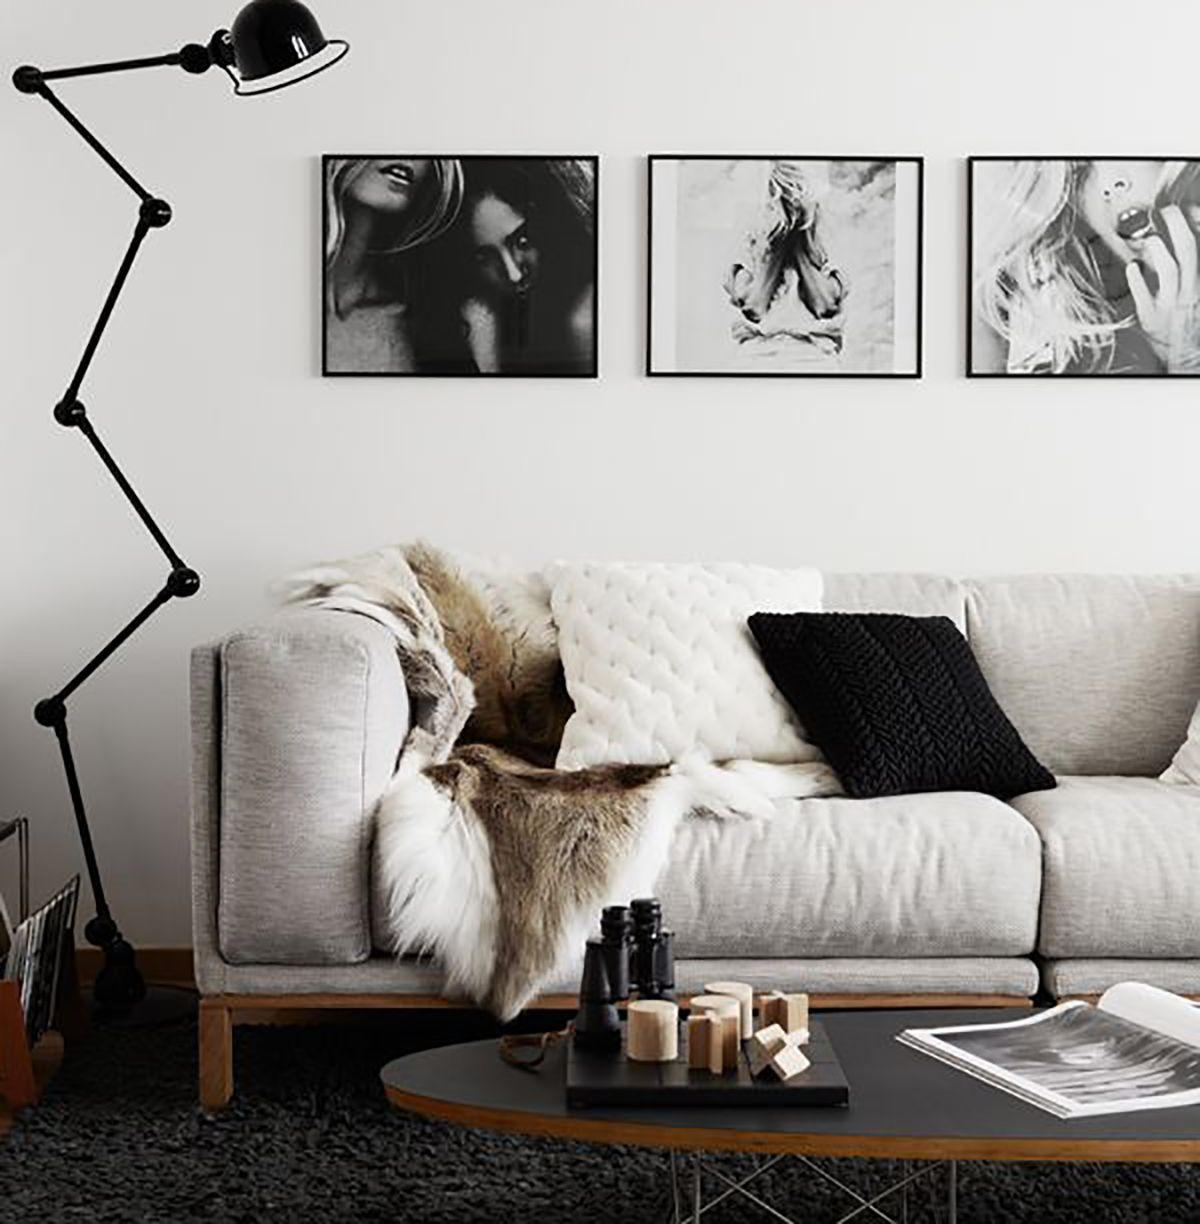 Design Tips On How To Achieve The Scandinavian Interior Style Urban Couture Designer